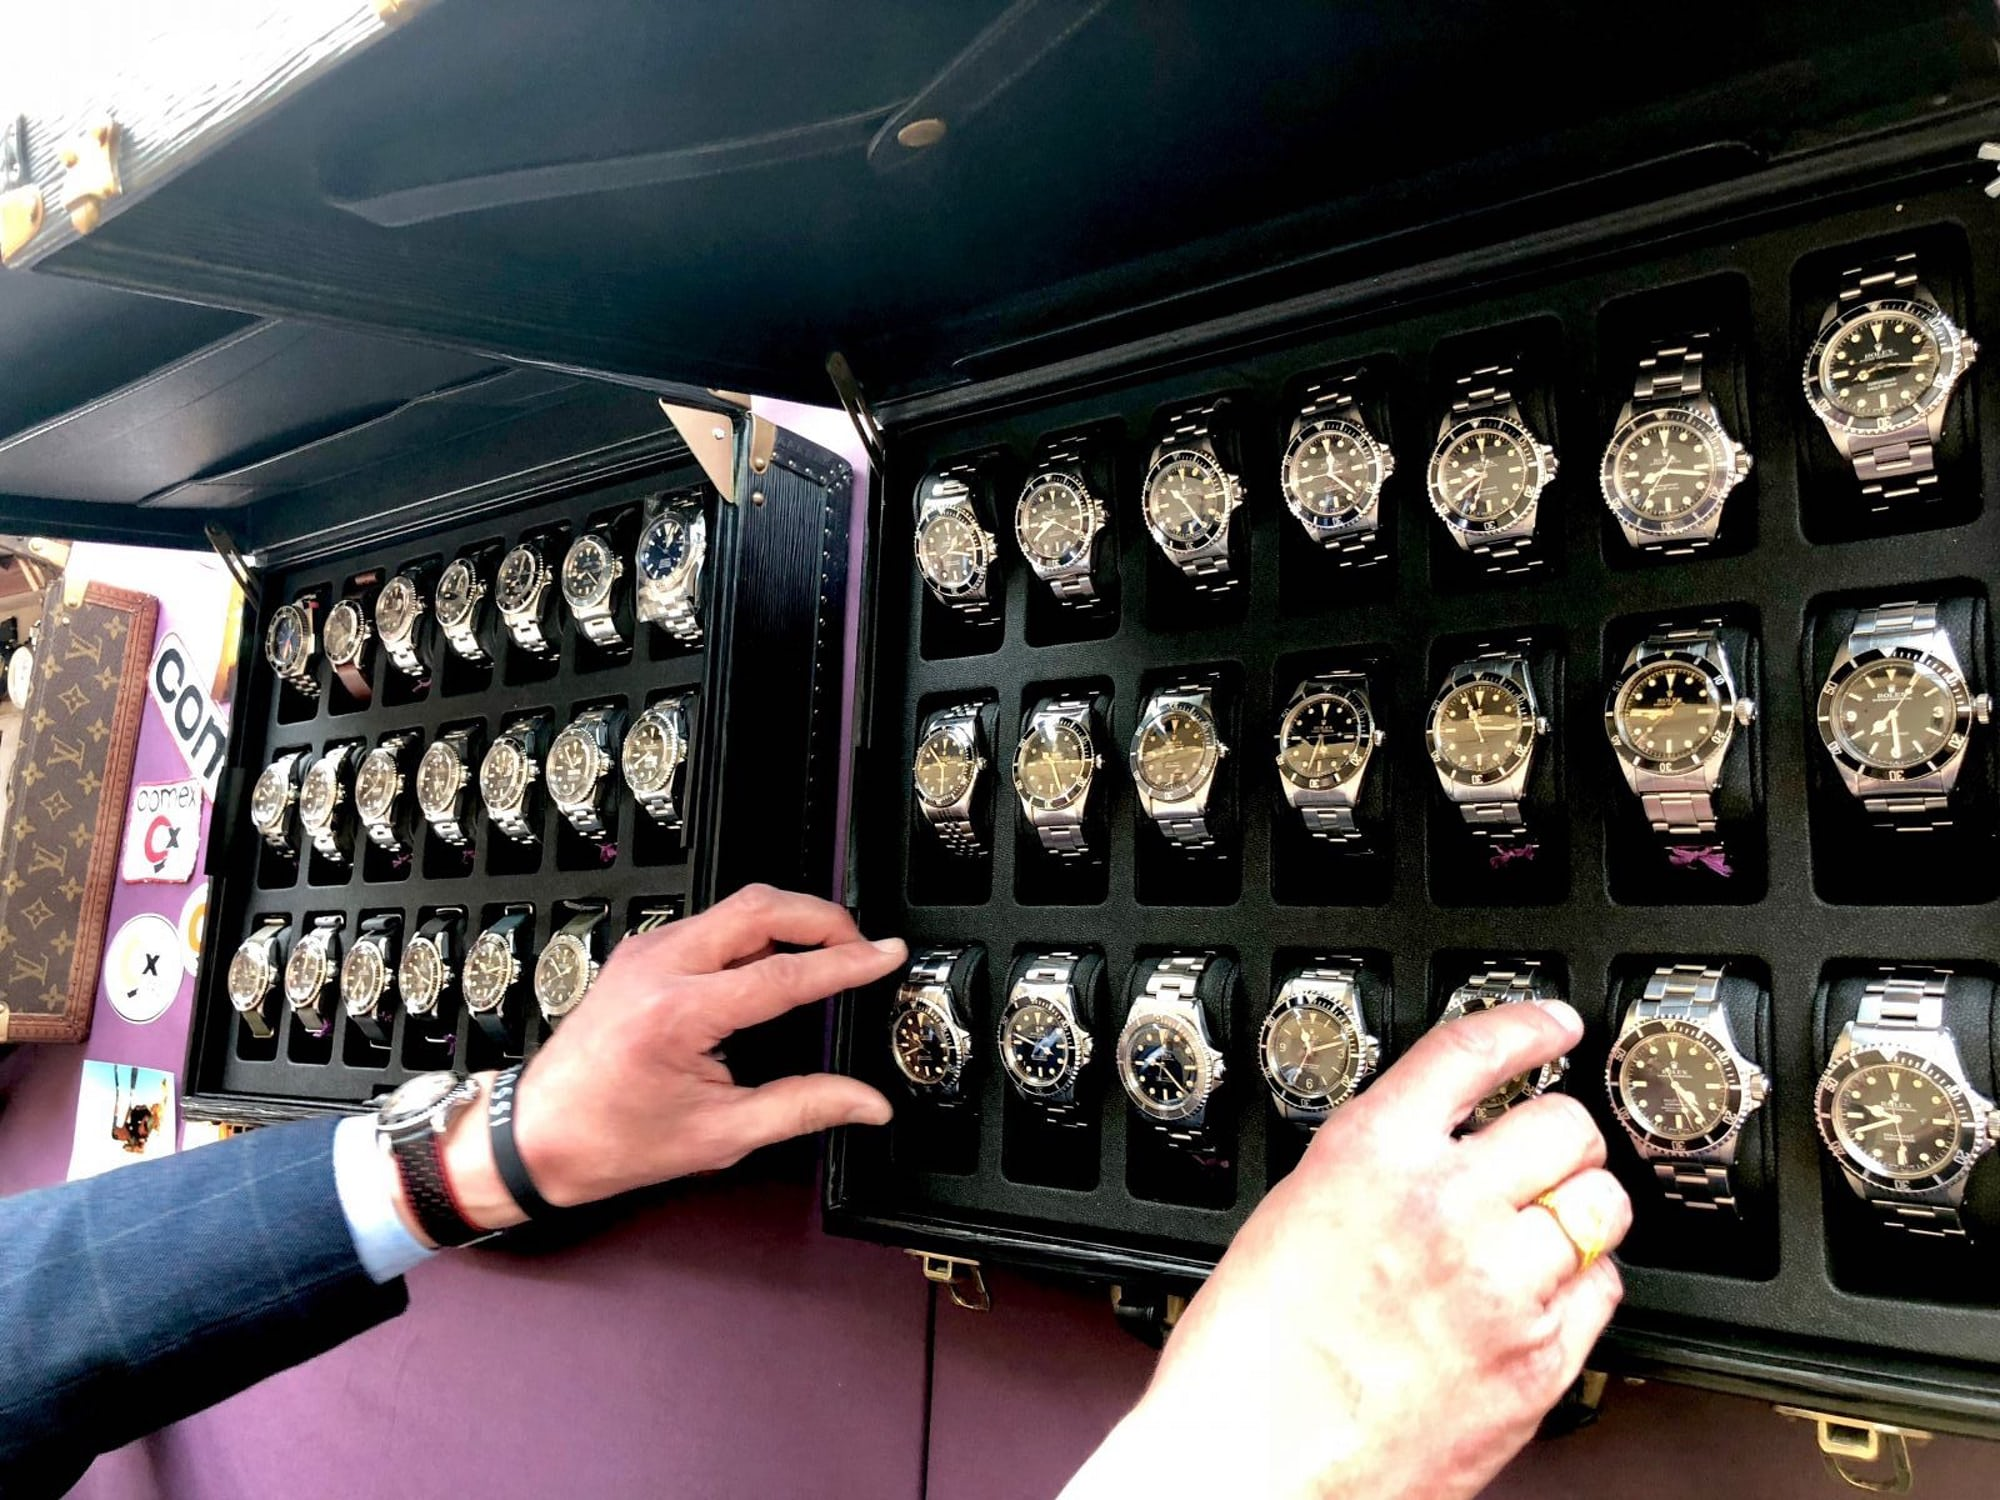 recommended reading: more old, issued rolex watches in one place than you ever thought possible Recommended Reading: More Old, Issued Rolex Watches In One Place Than You Ever Thought Possible IMG 3671